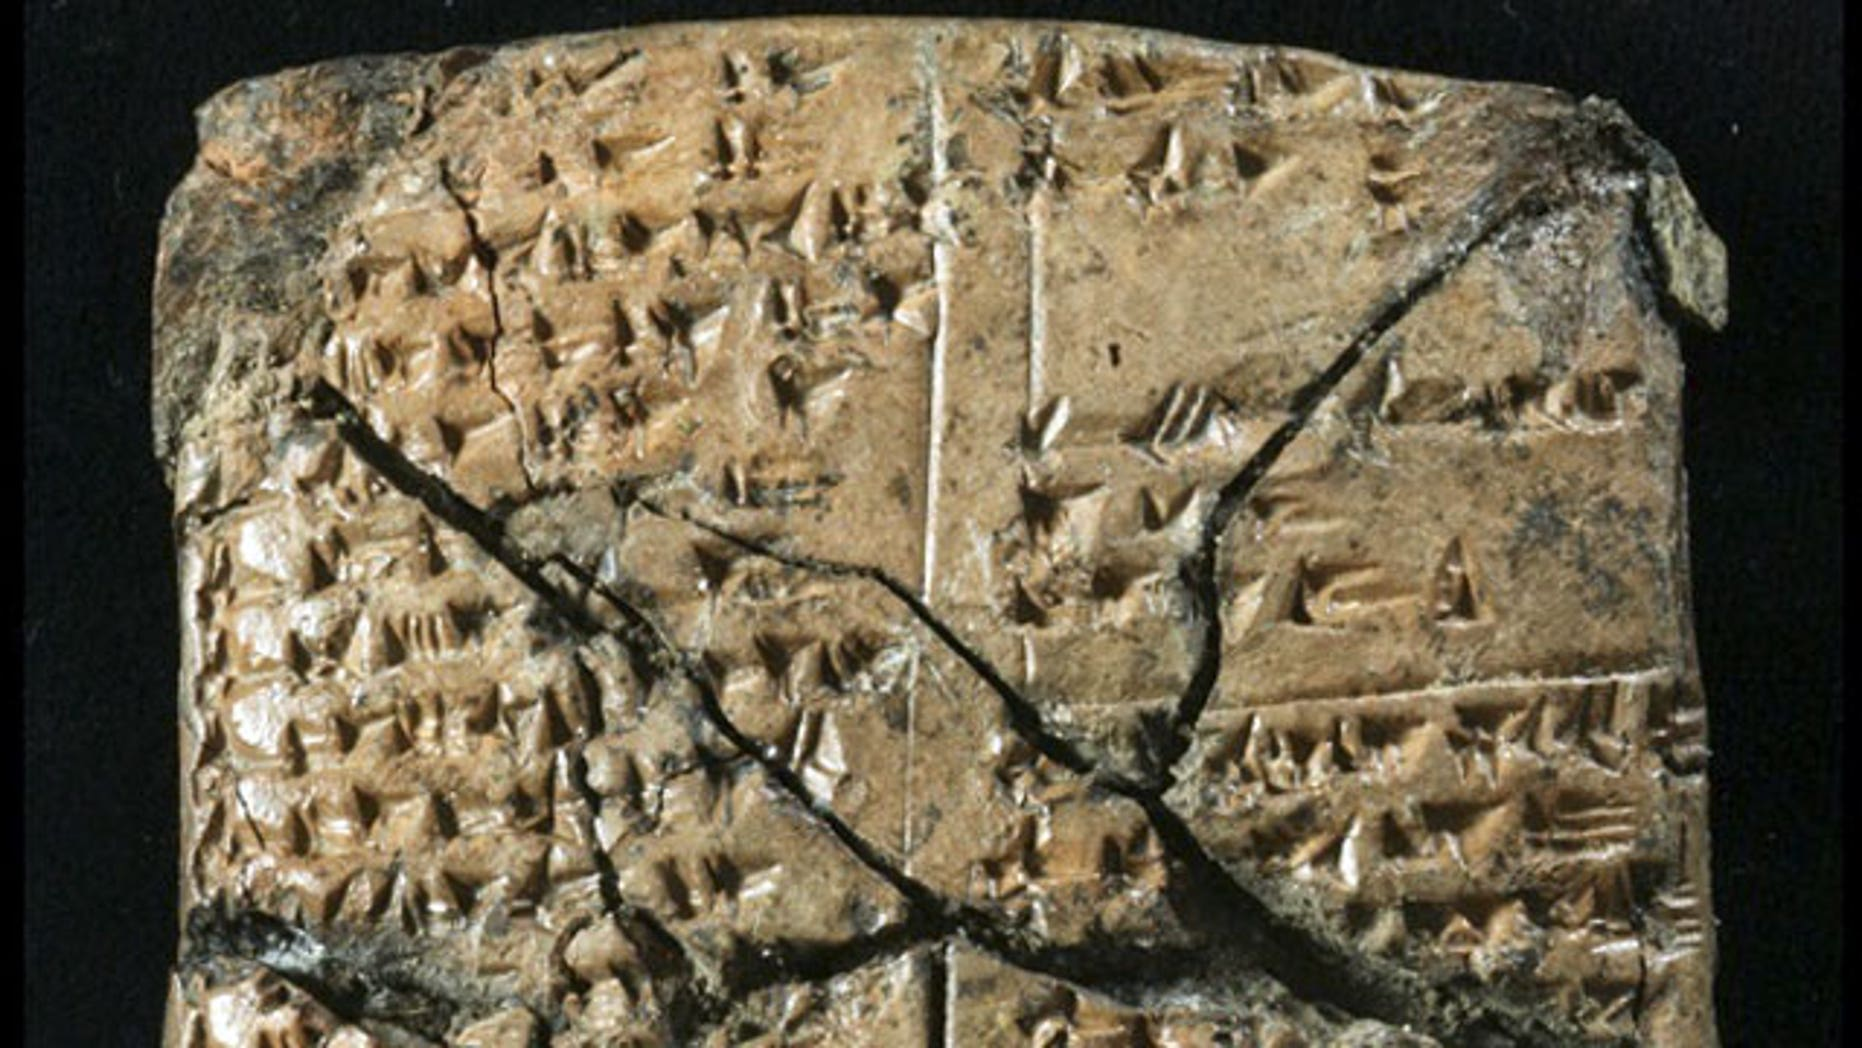 Ancient clay tablets (such as the one pictured) inscribed with cuneiform script, a type of ancient writing once common in the Middle East, have been found in southeastern Turkey, archaeologists announced in October 2009.